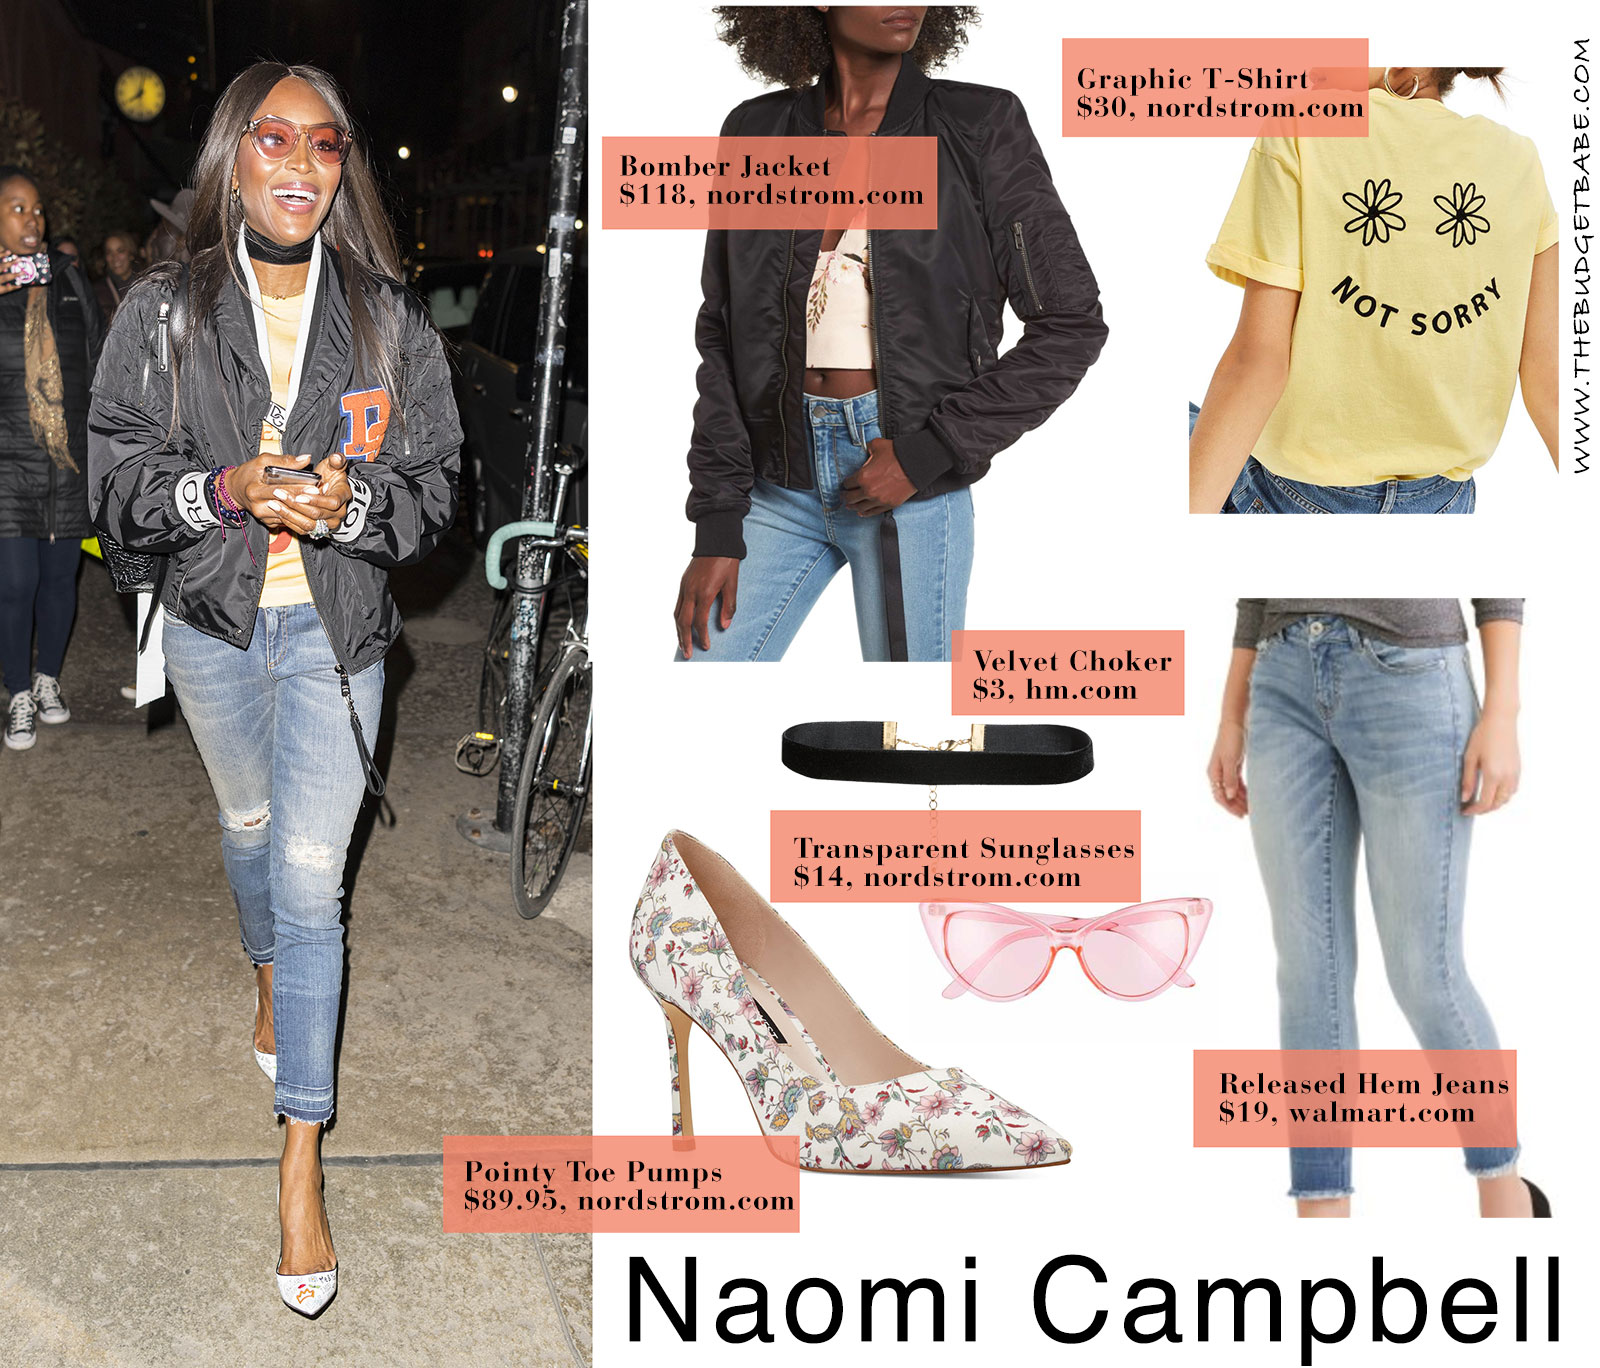 Naomi Campbell's Dolce & Gabbana bomber jacket and graffiti heels look for less